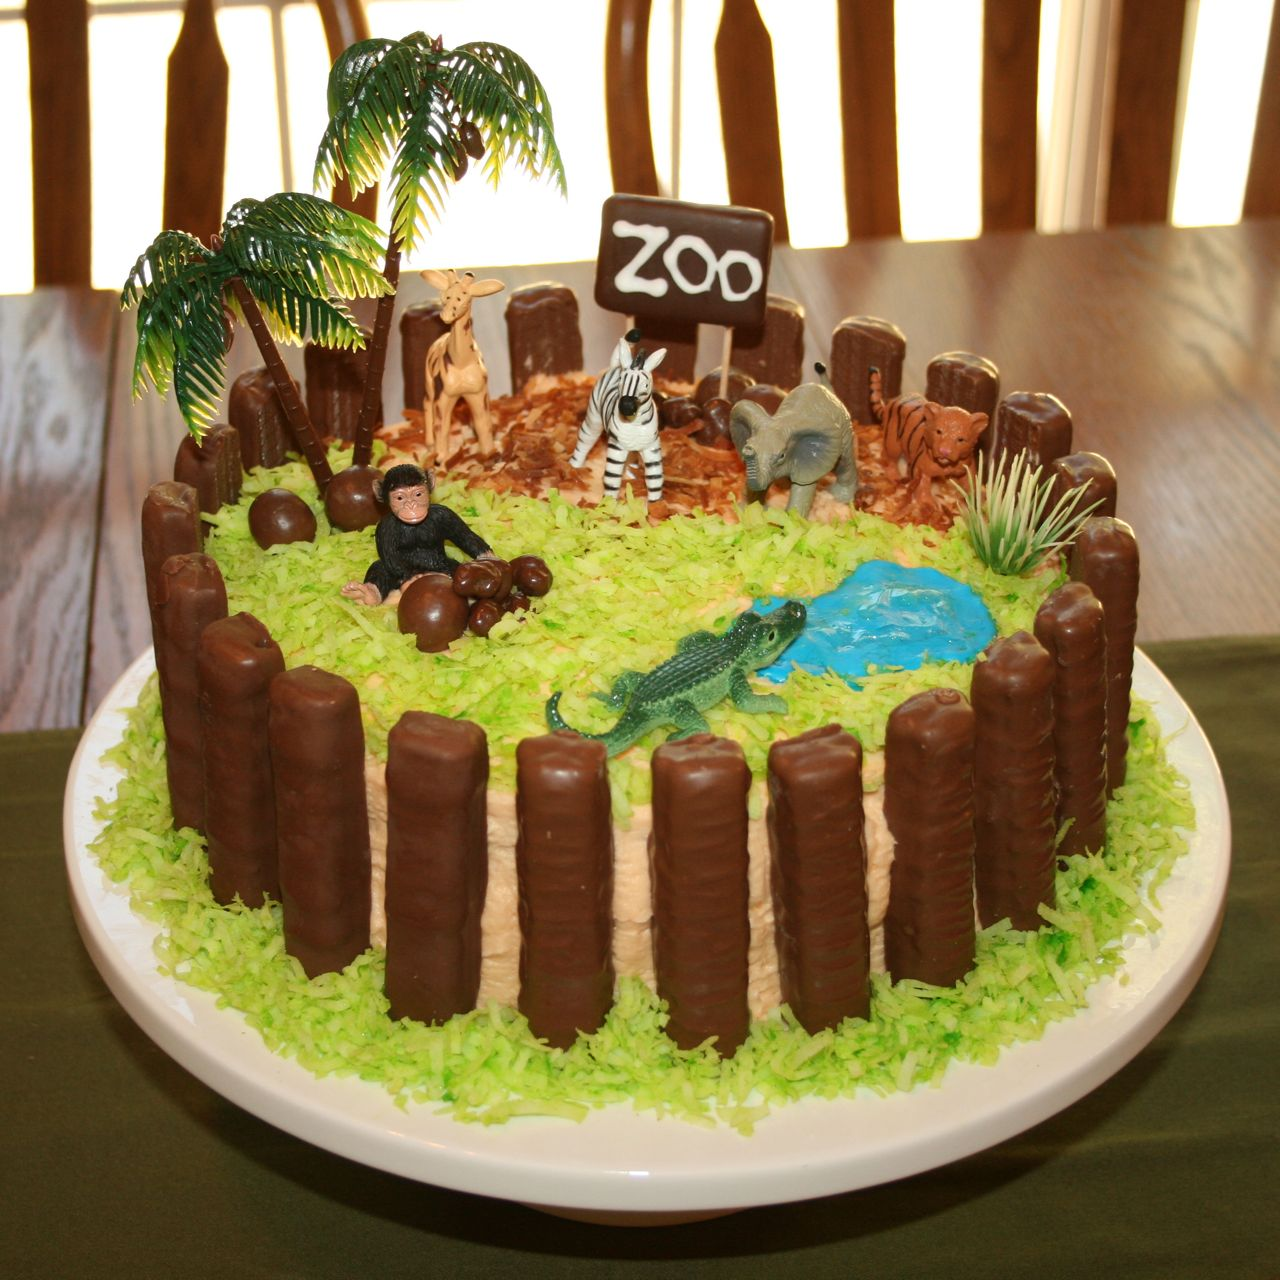 Zoo Birthday Cake On Pinterest